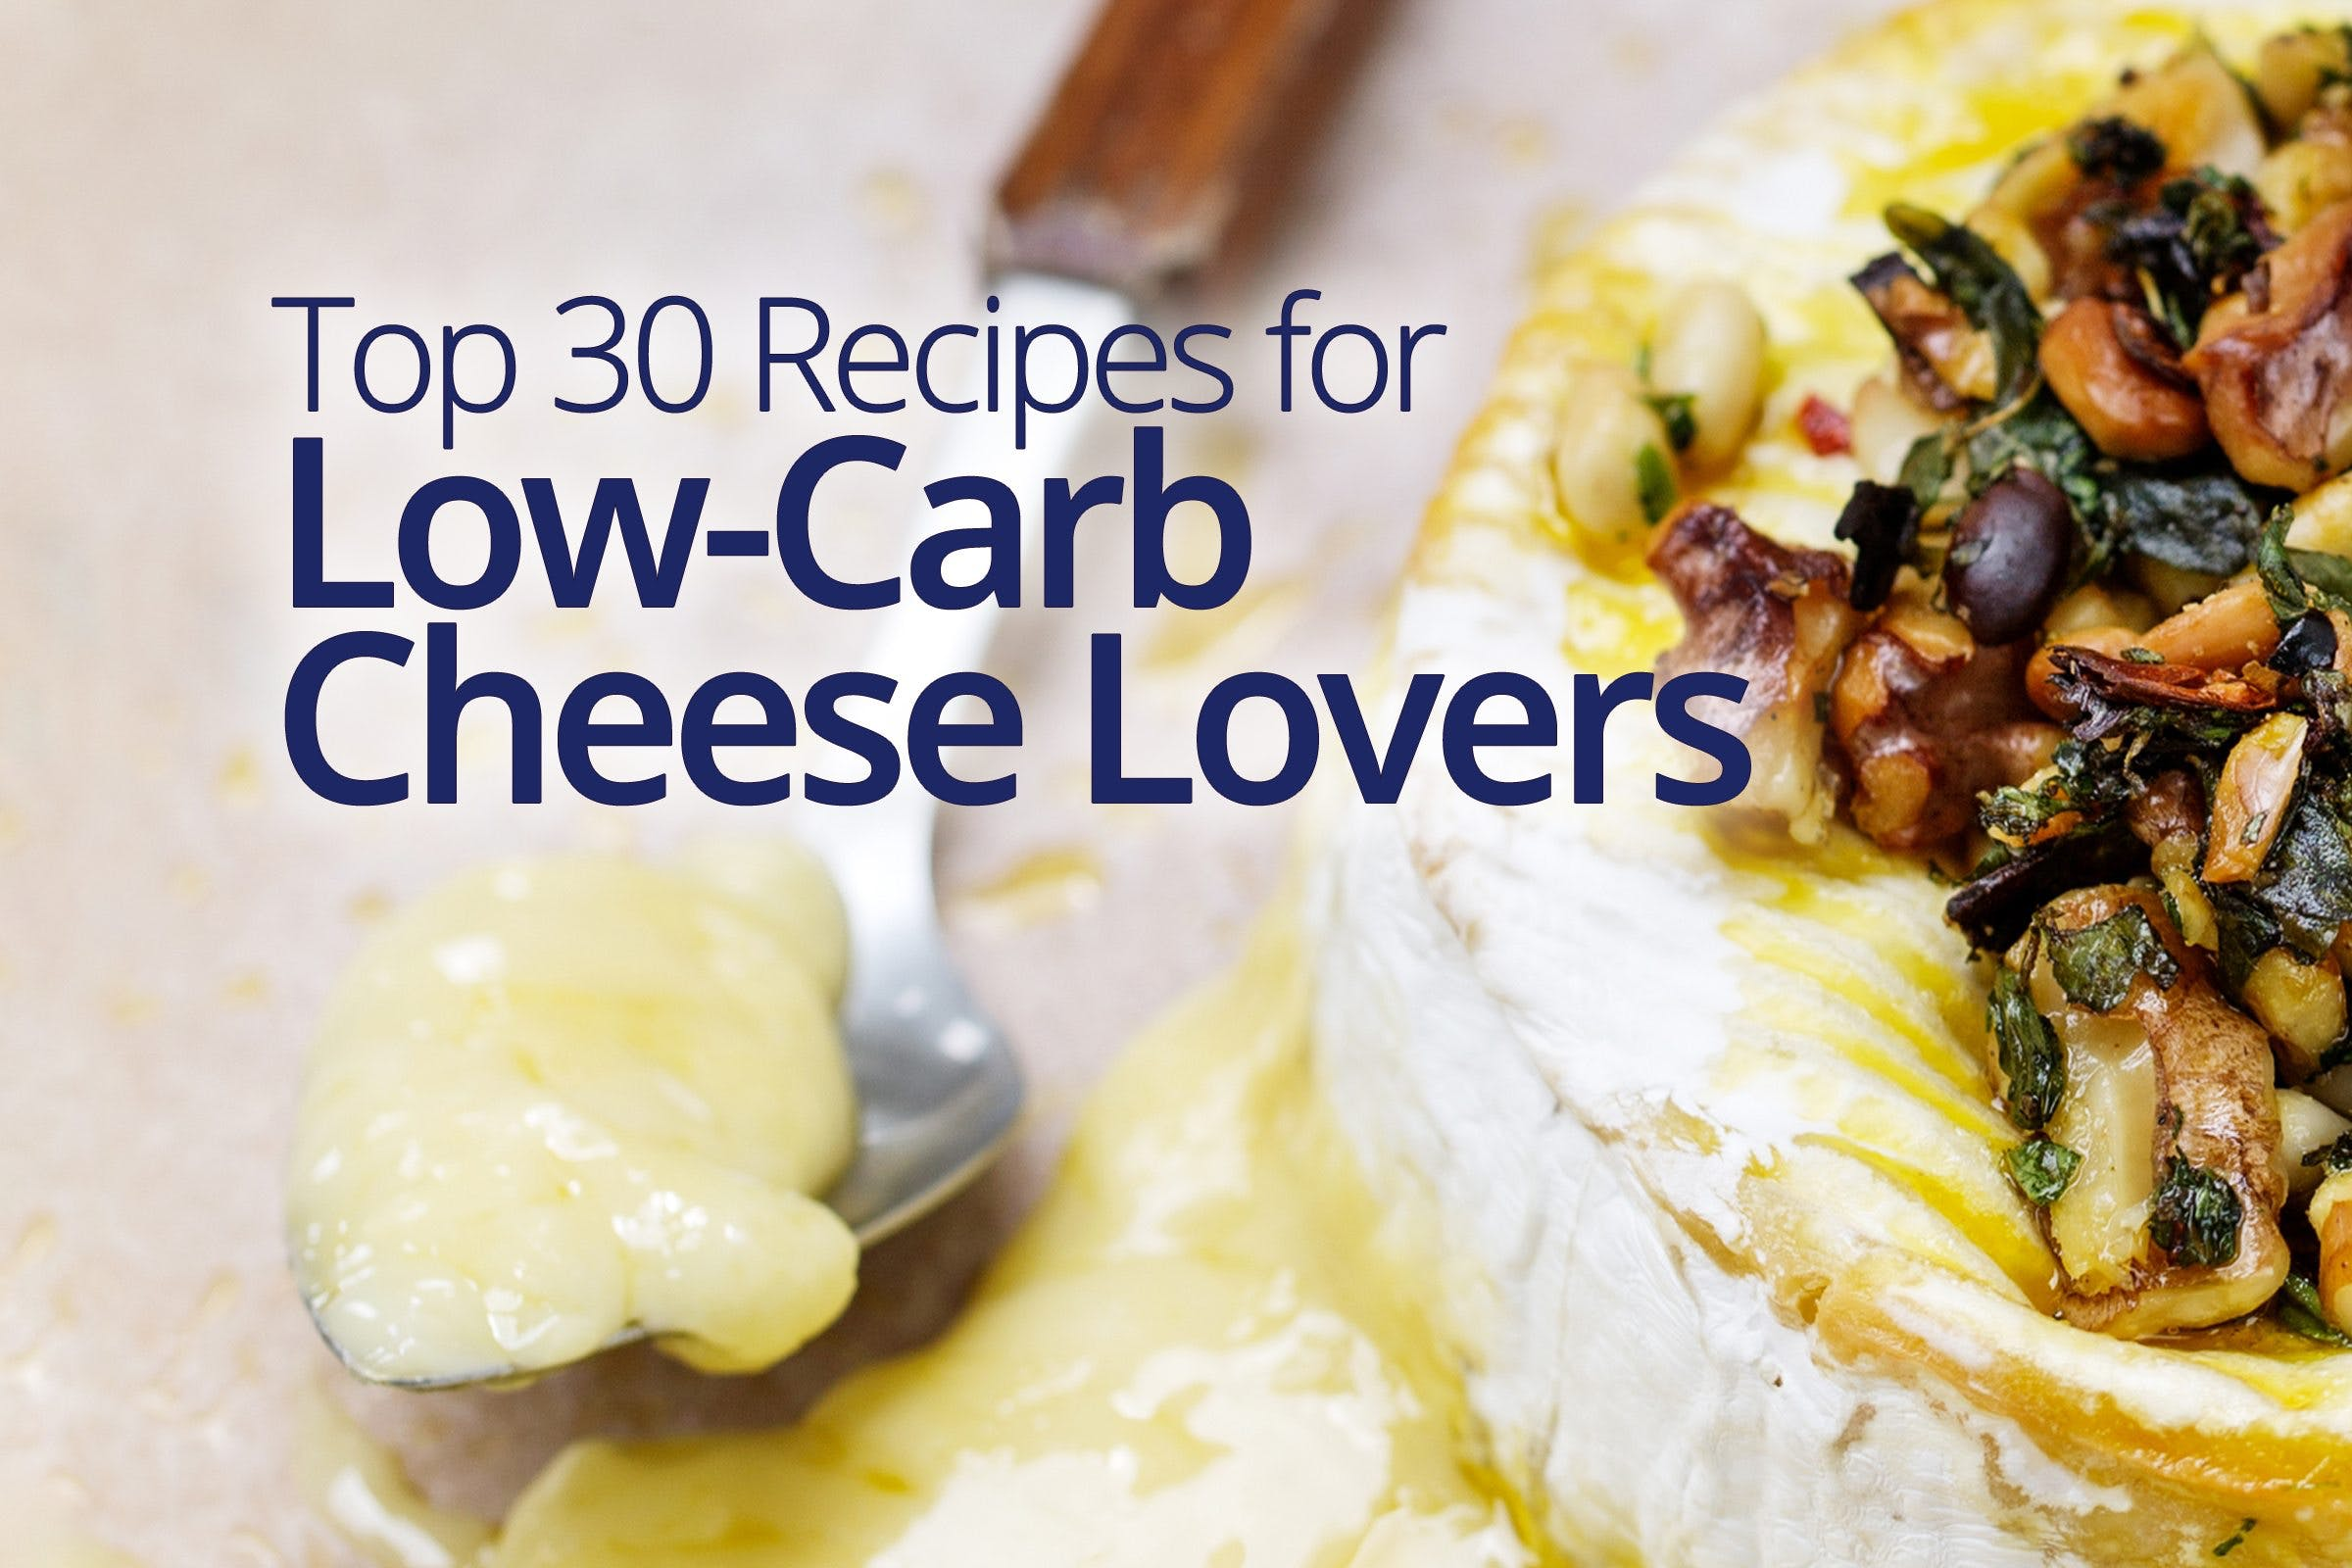 Top 30 Recipes for Low-Carb Cheese Lovers